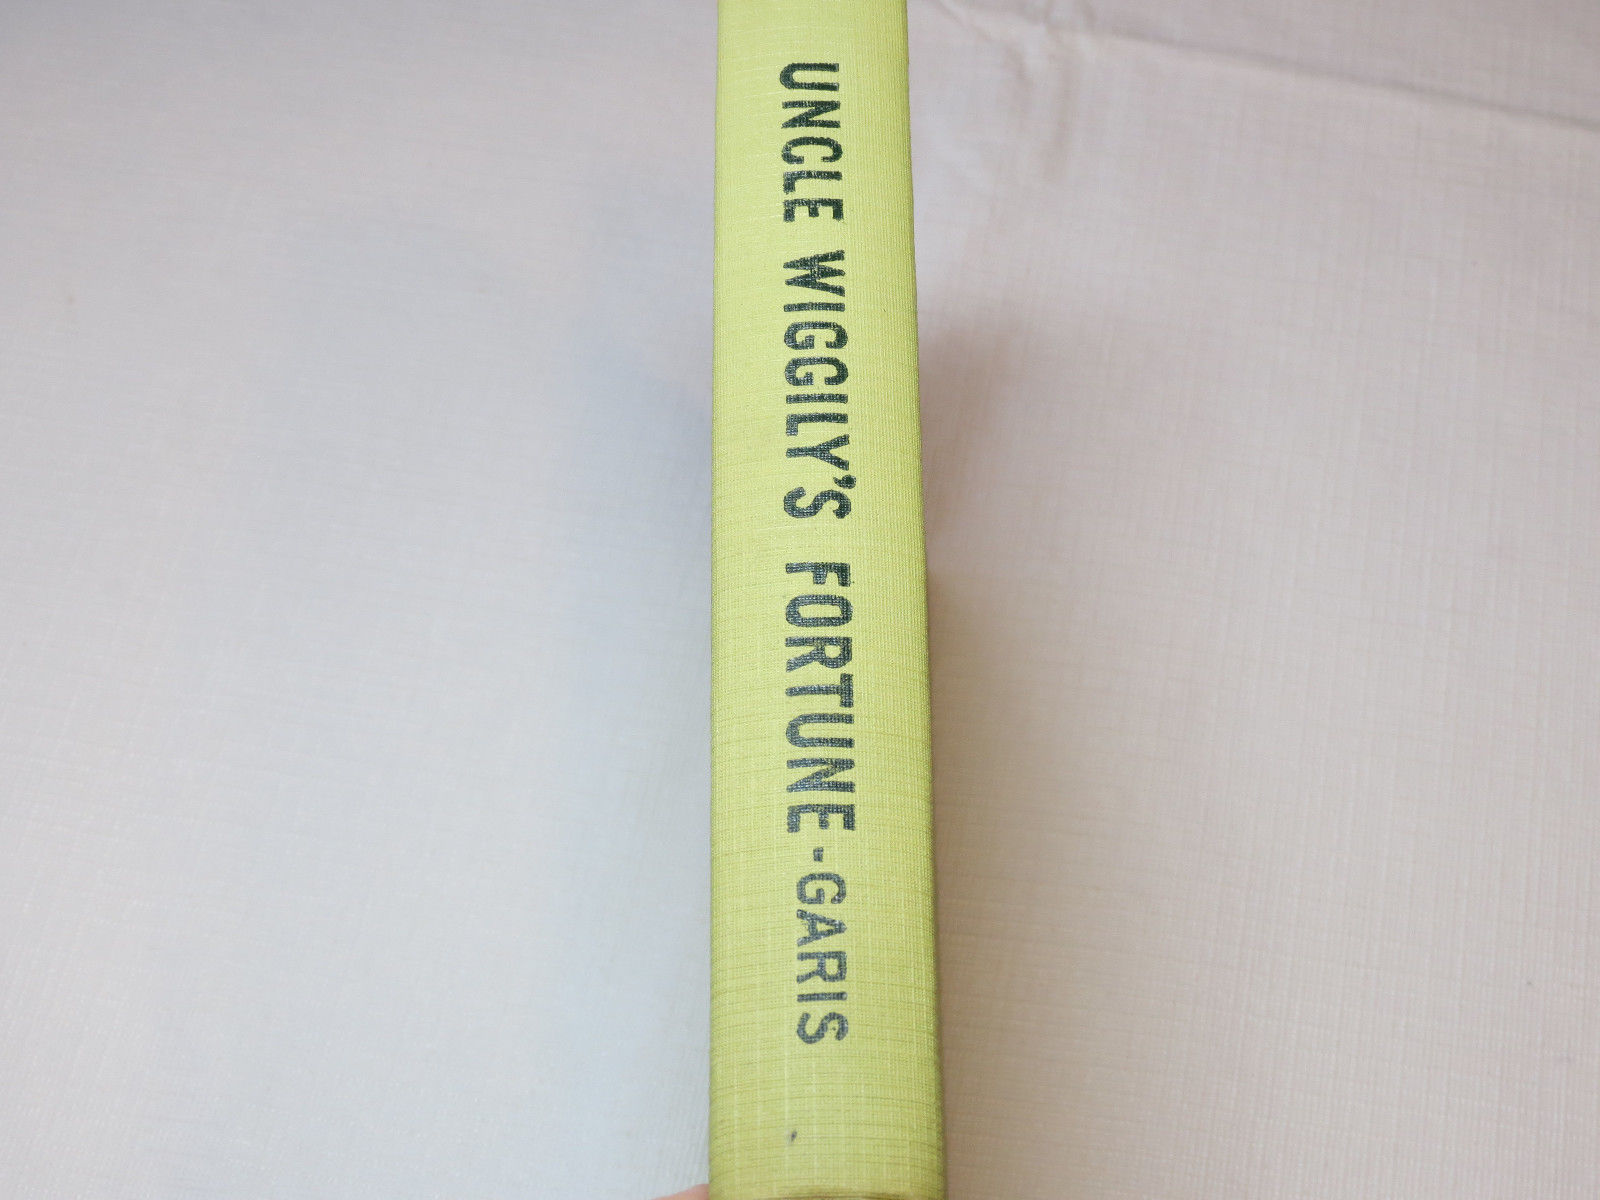 Uncle Wiggily's Fortune Howard R. Garis 1942 book without dust cover #%